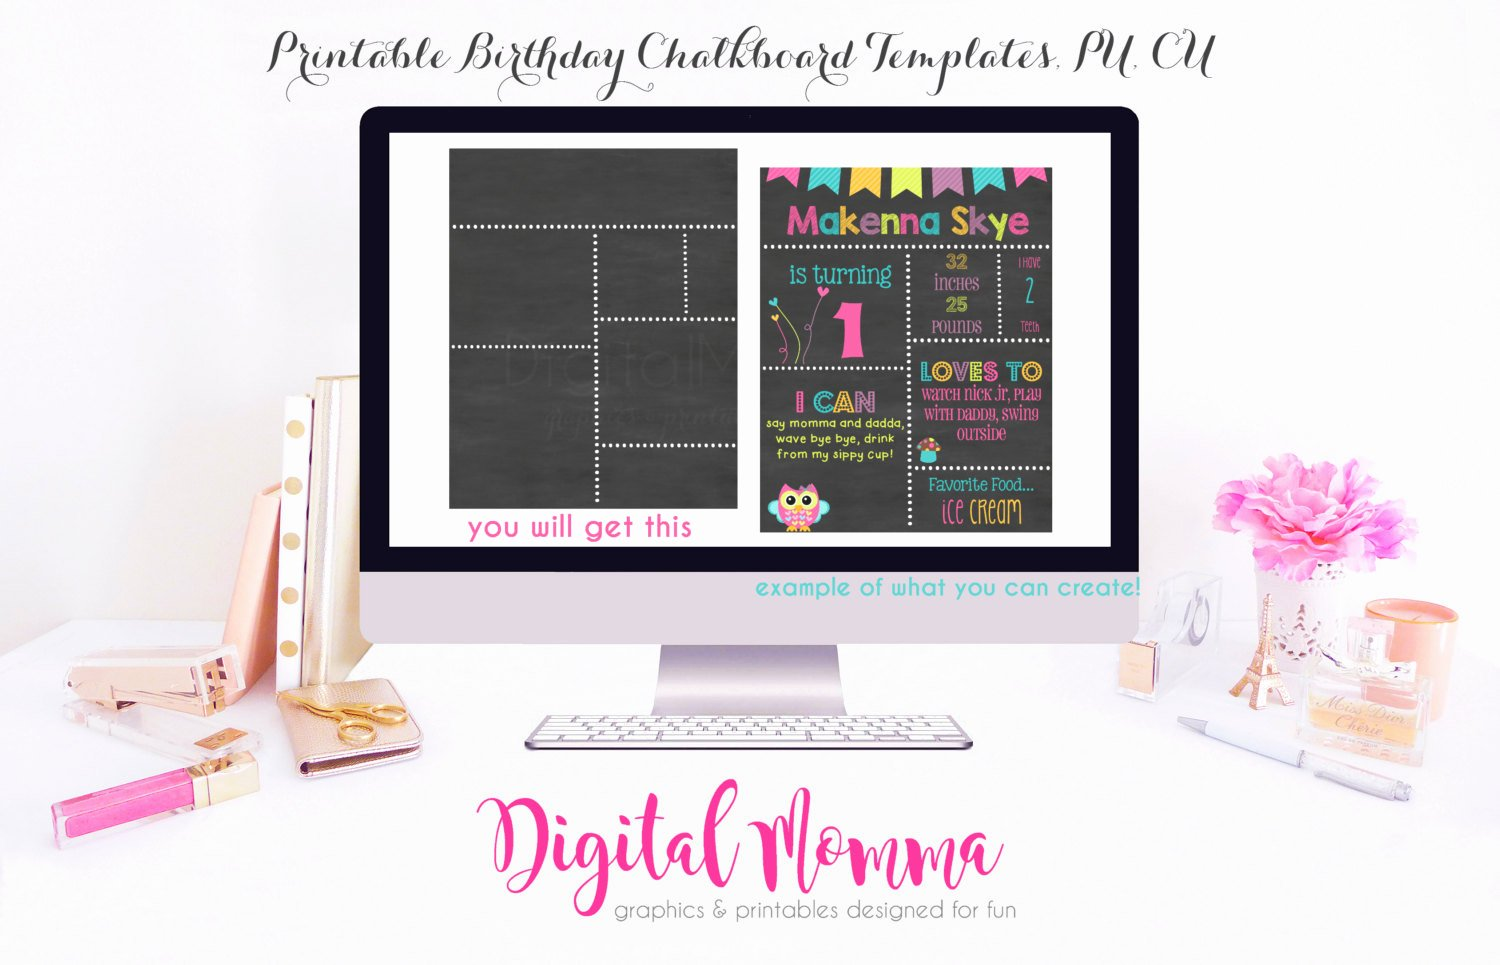 Free Birthday Chalkboard Template Lovely Printable Diy Blank Birthday Chalkboard Template High